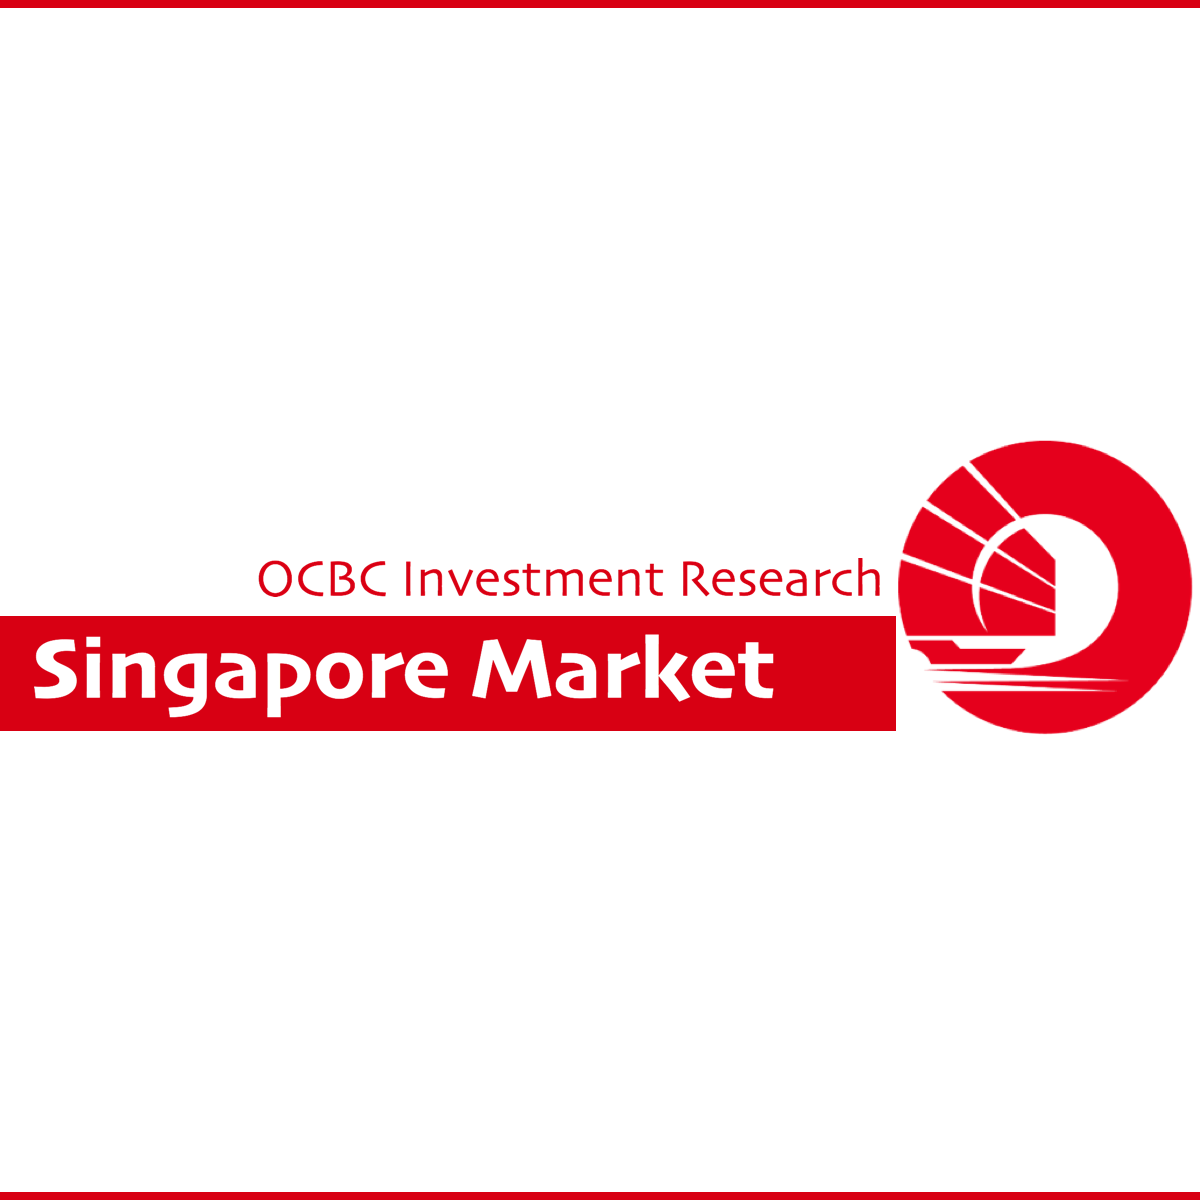 Singapore Strategy - OCBC Investment Research 2018-07-18: Great Summer To Cherry Pick